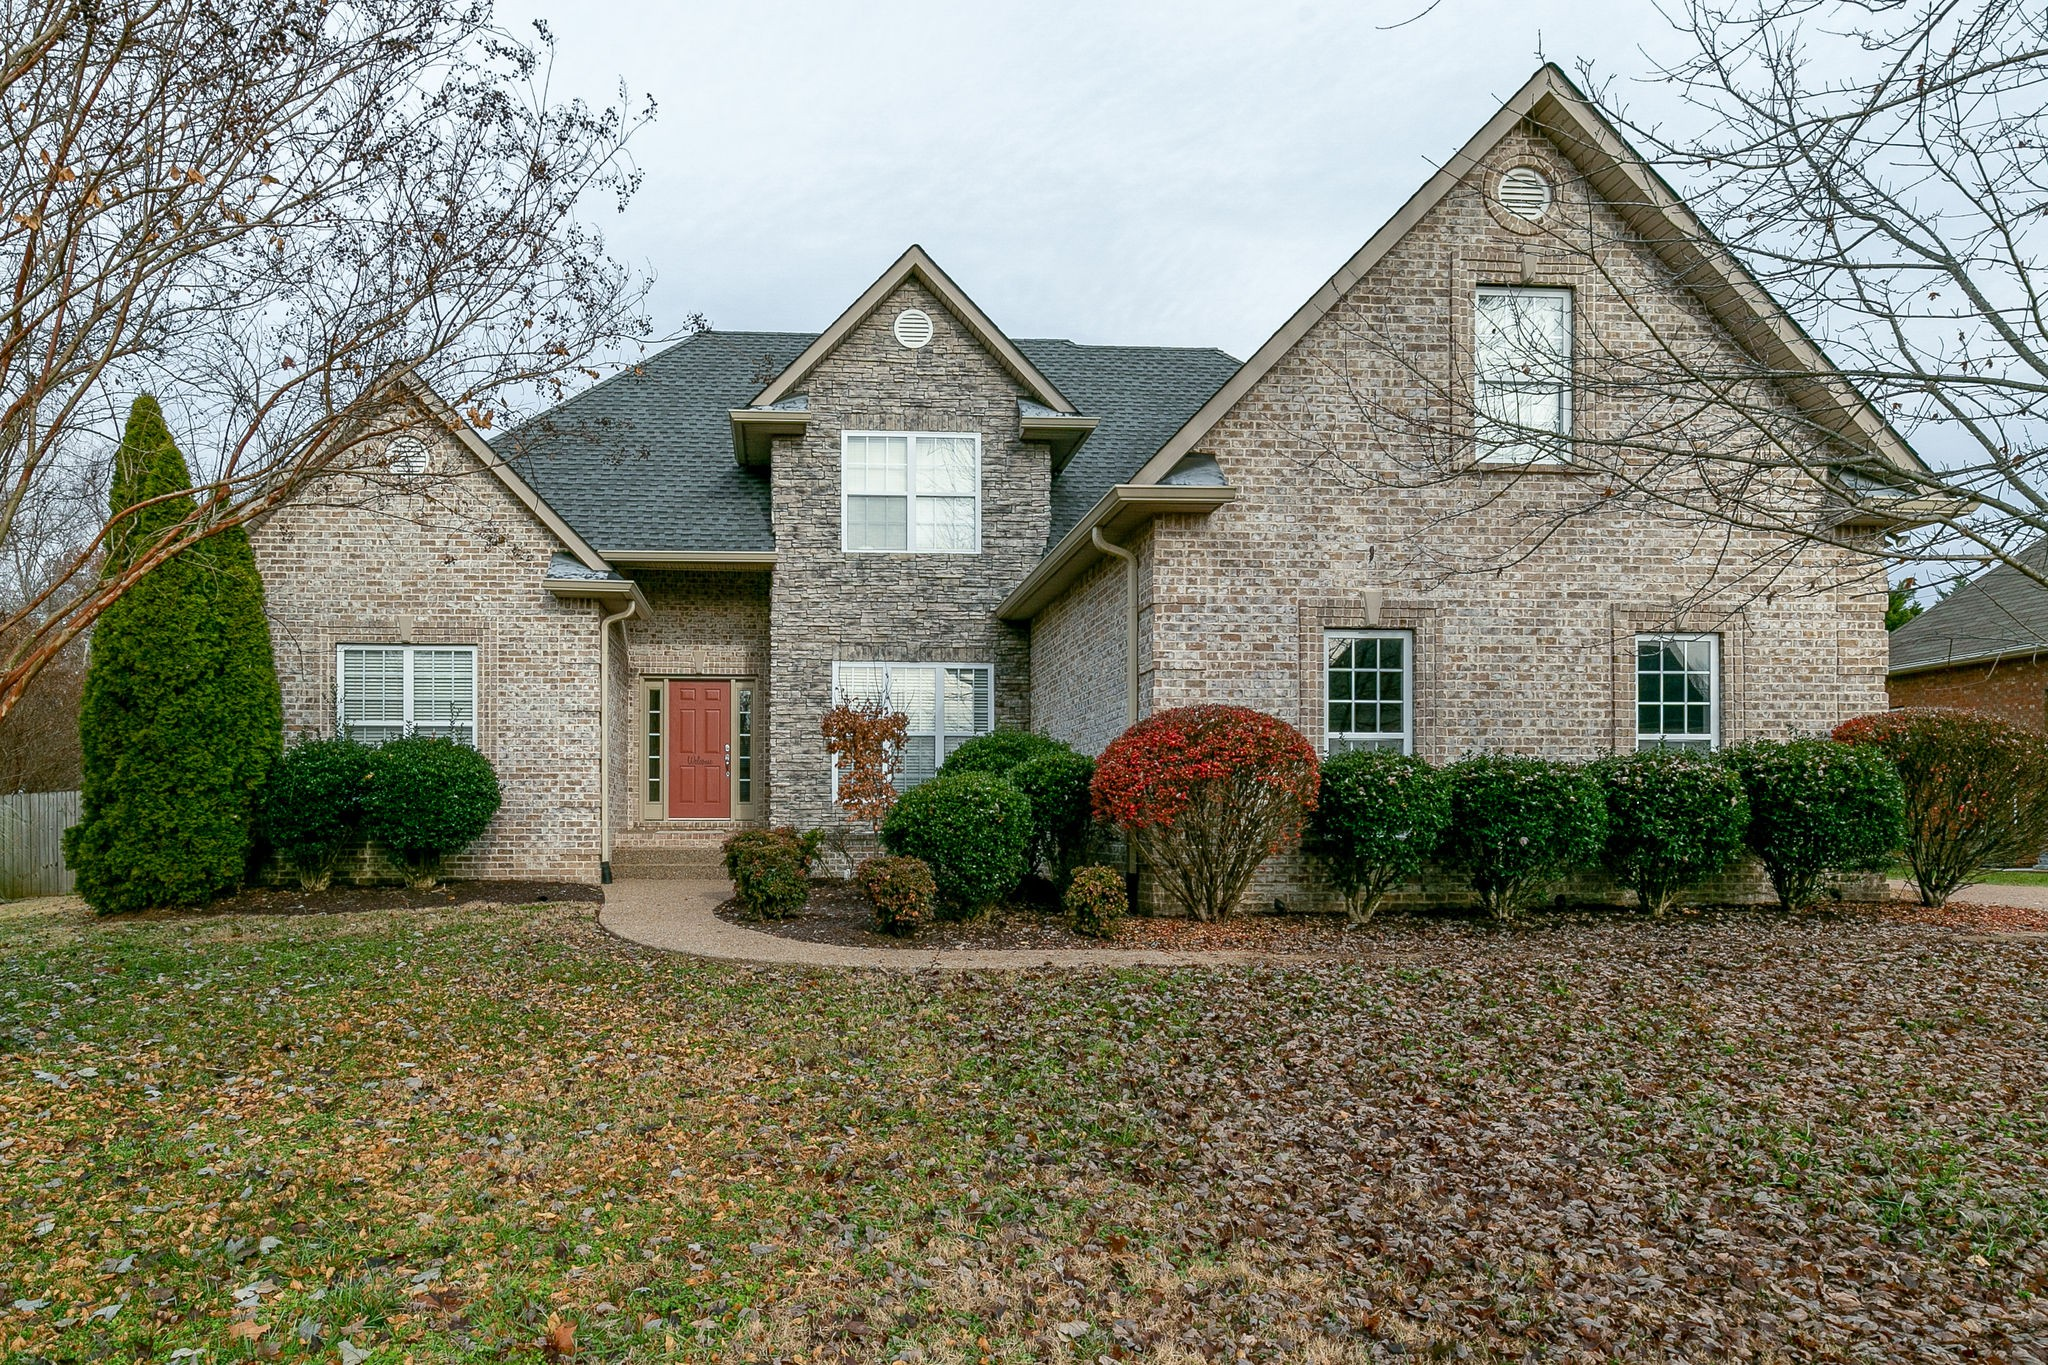 3102 Shropshire Ct, Thompsons Station, TN 37179 - Thompsons Station, TN real estate listing